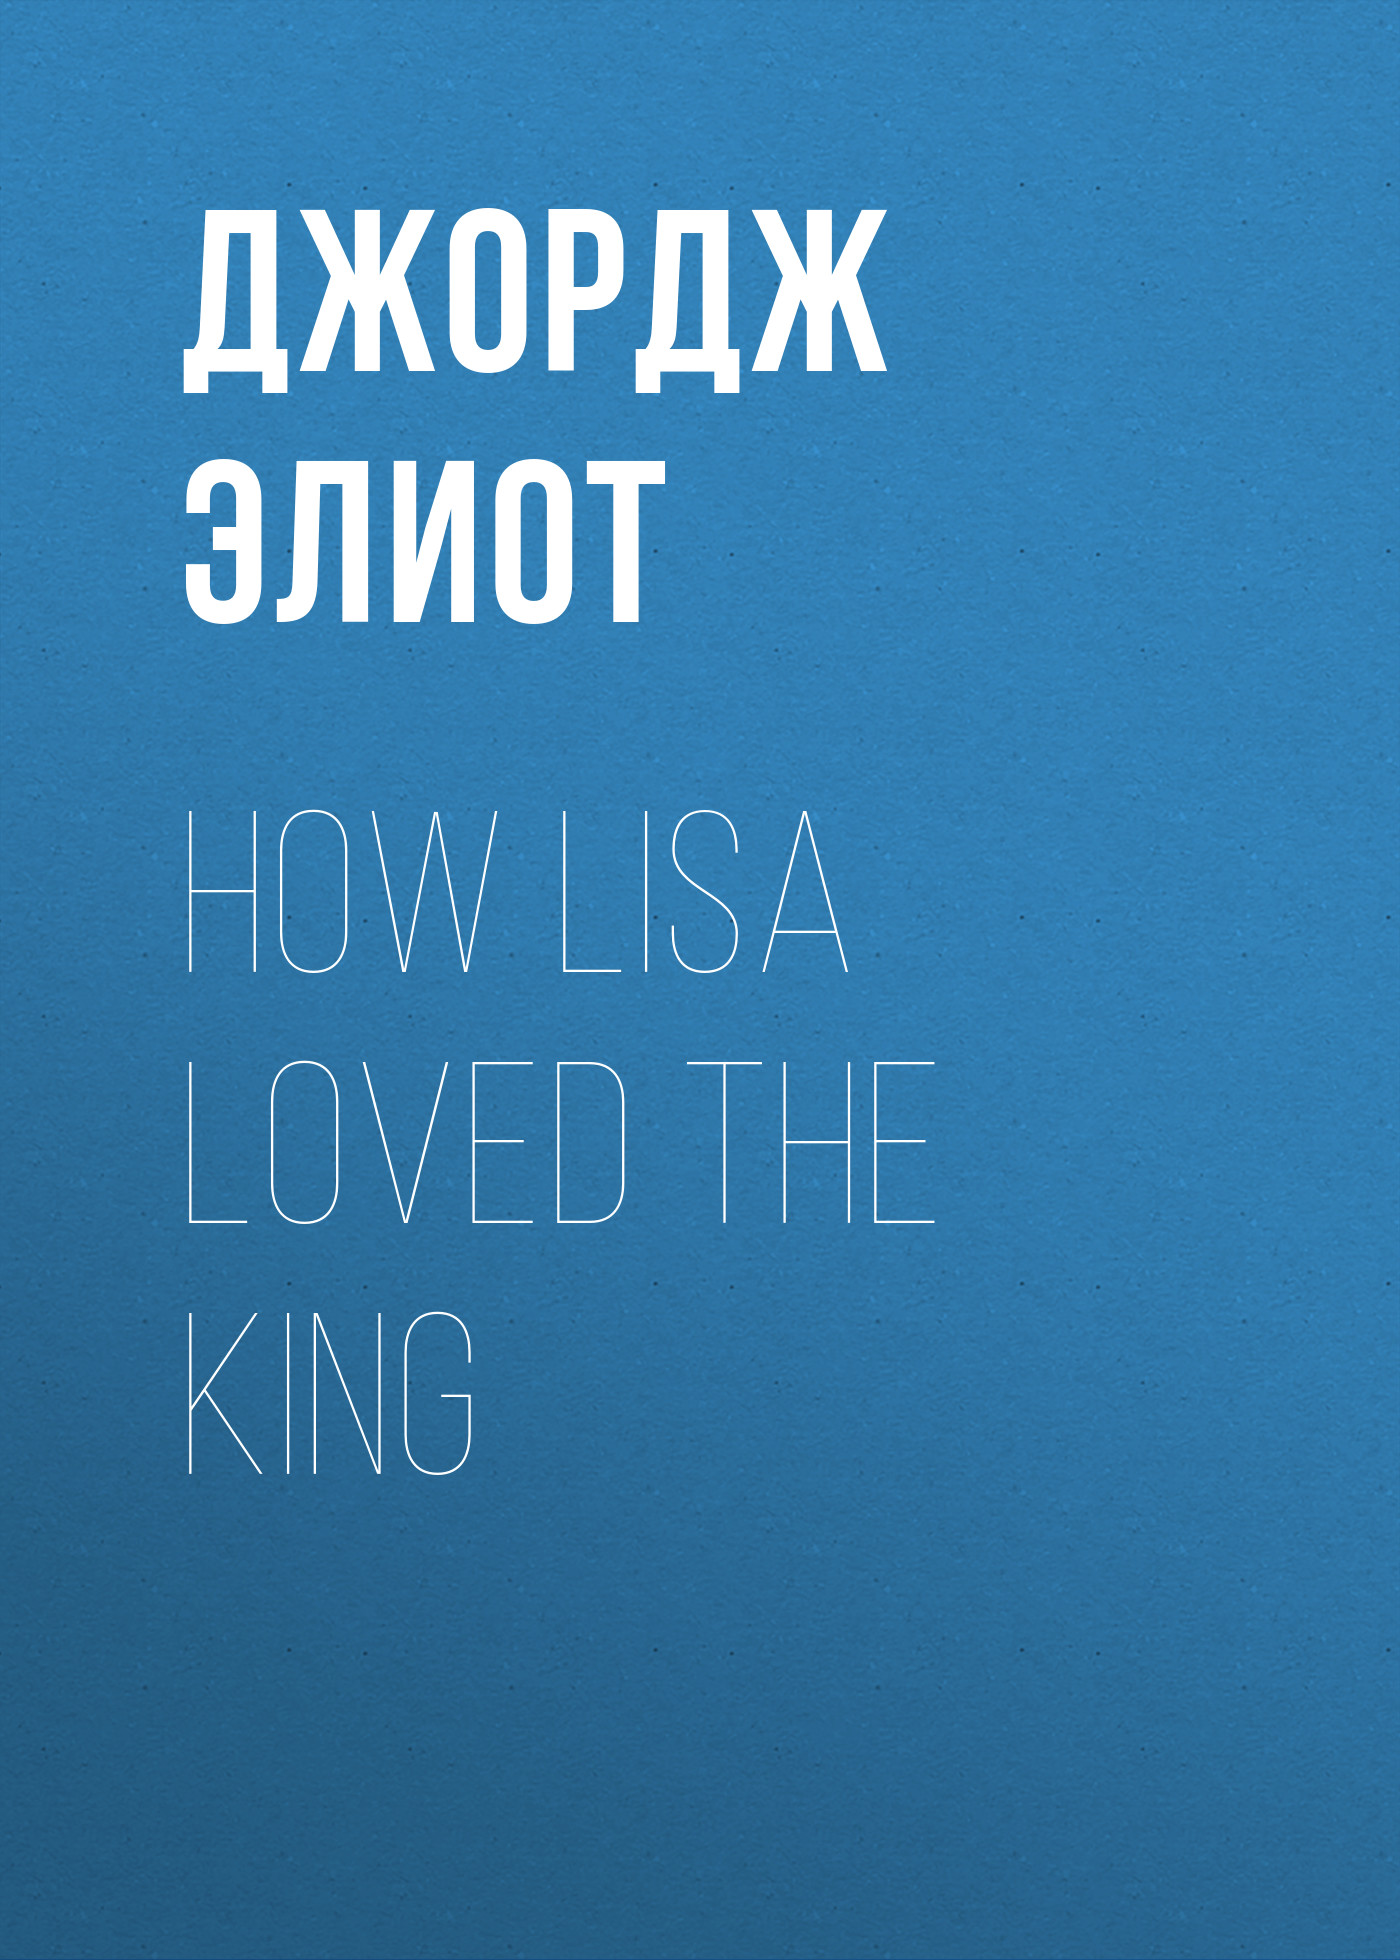 Джордж Элиот How Lisa Loved the King джордж элиот silas marner